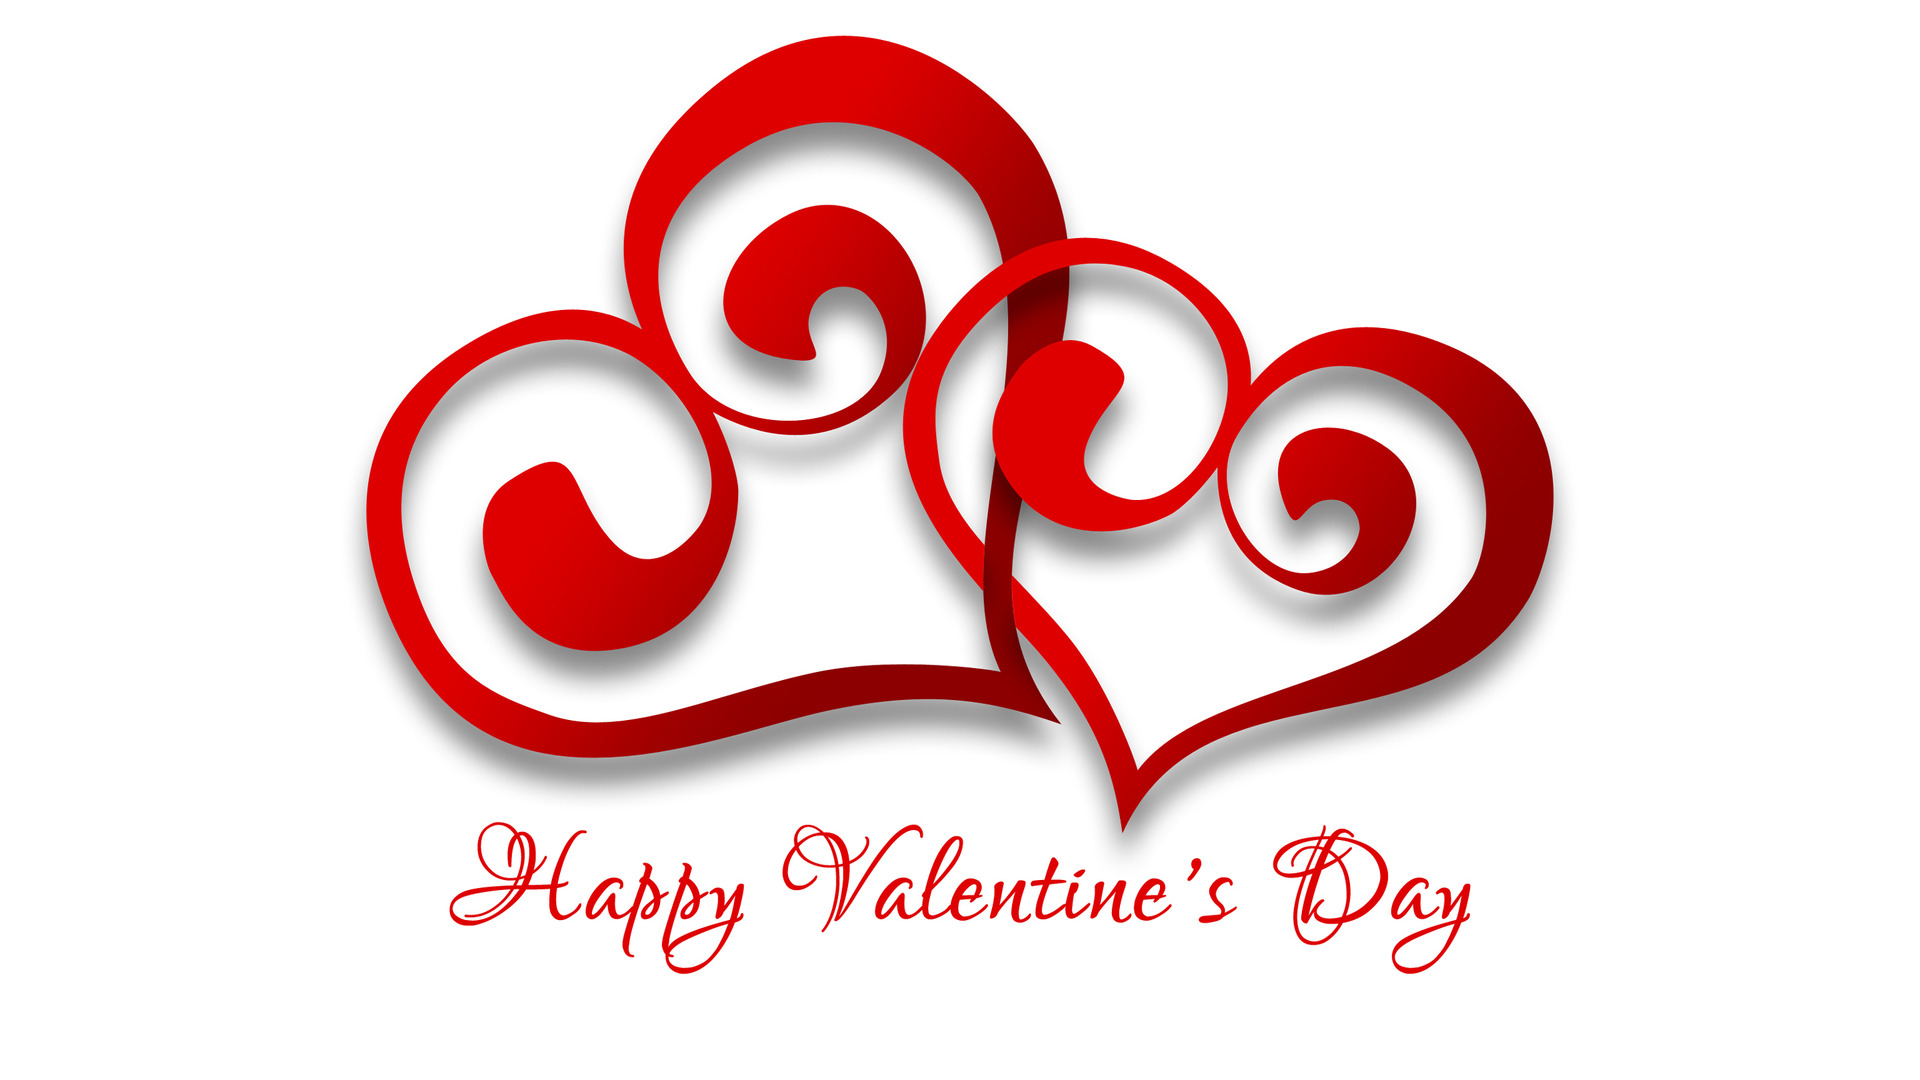 happy-valentines-day-background_023446301_24.jpg